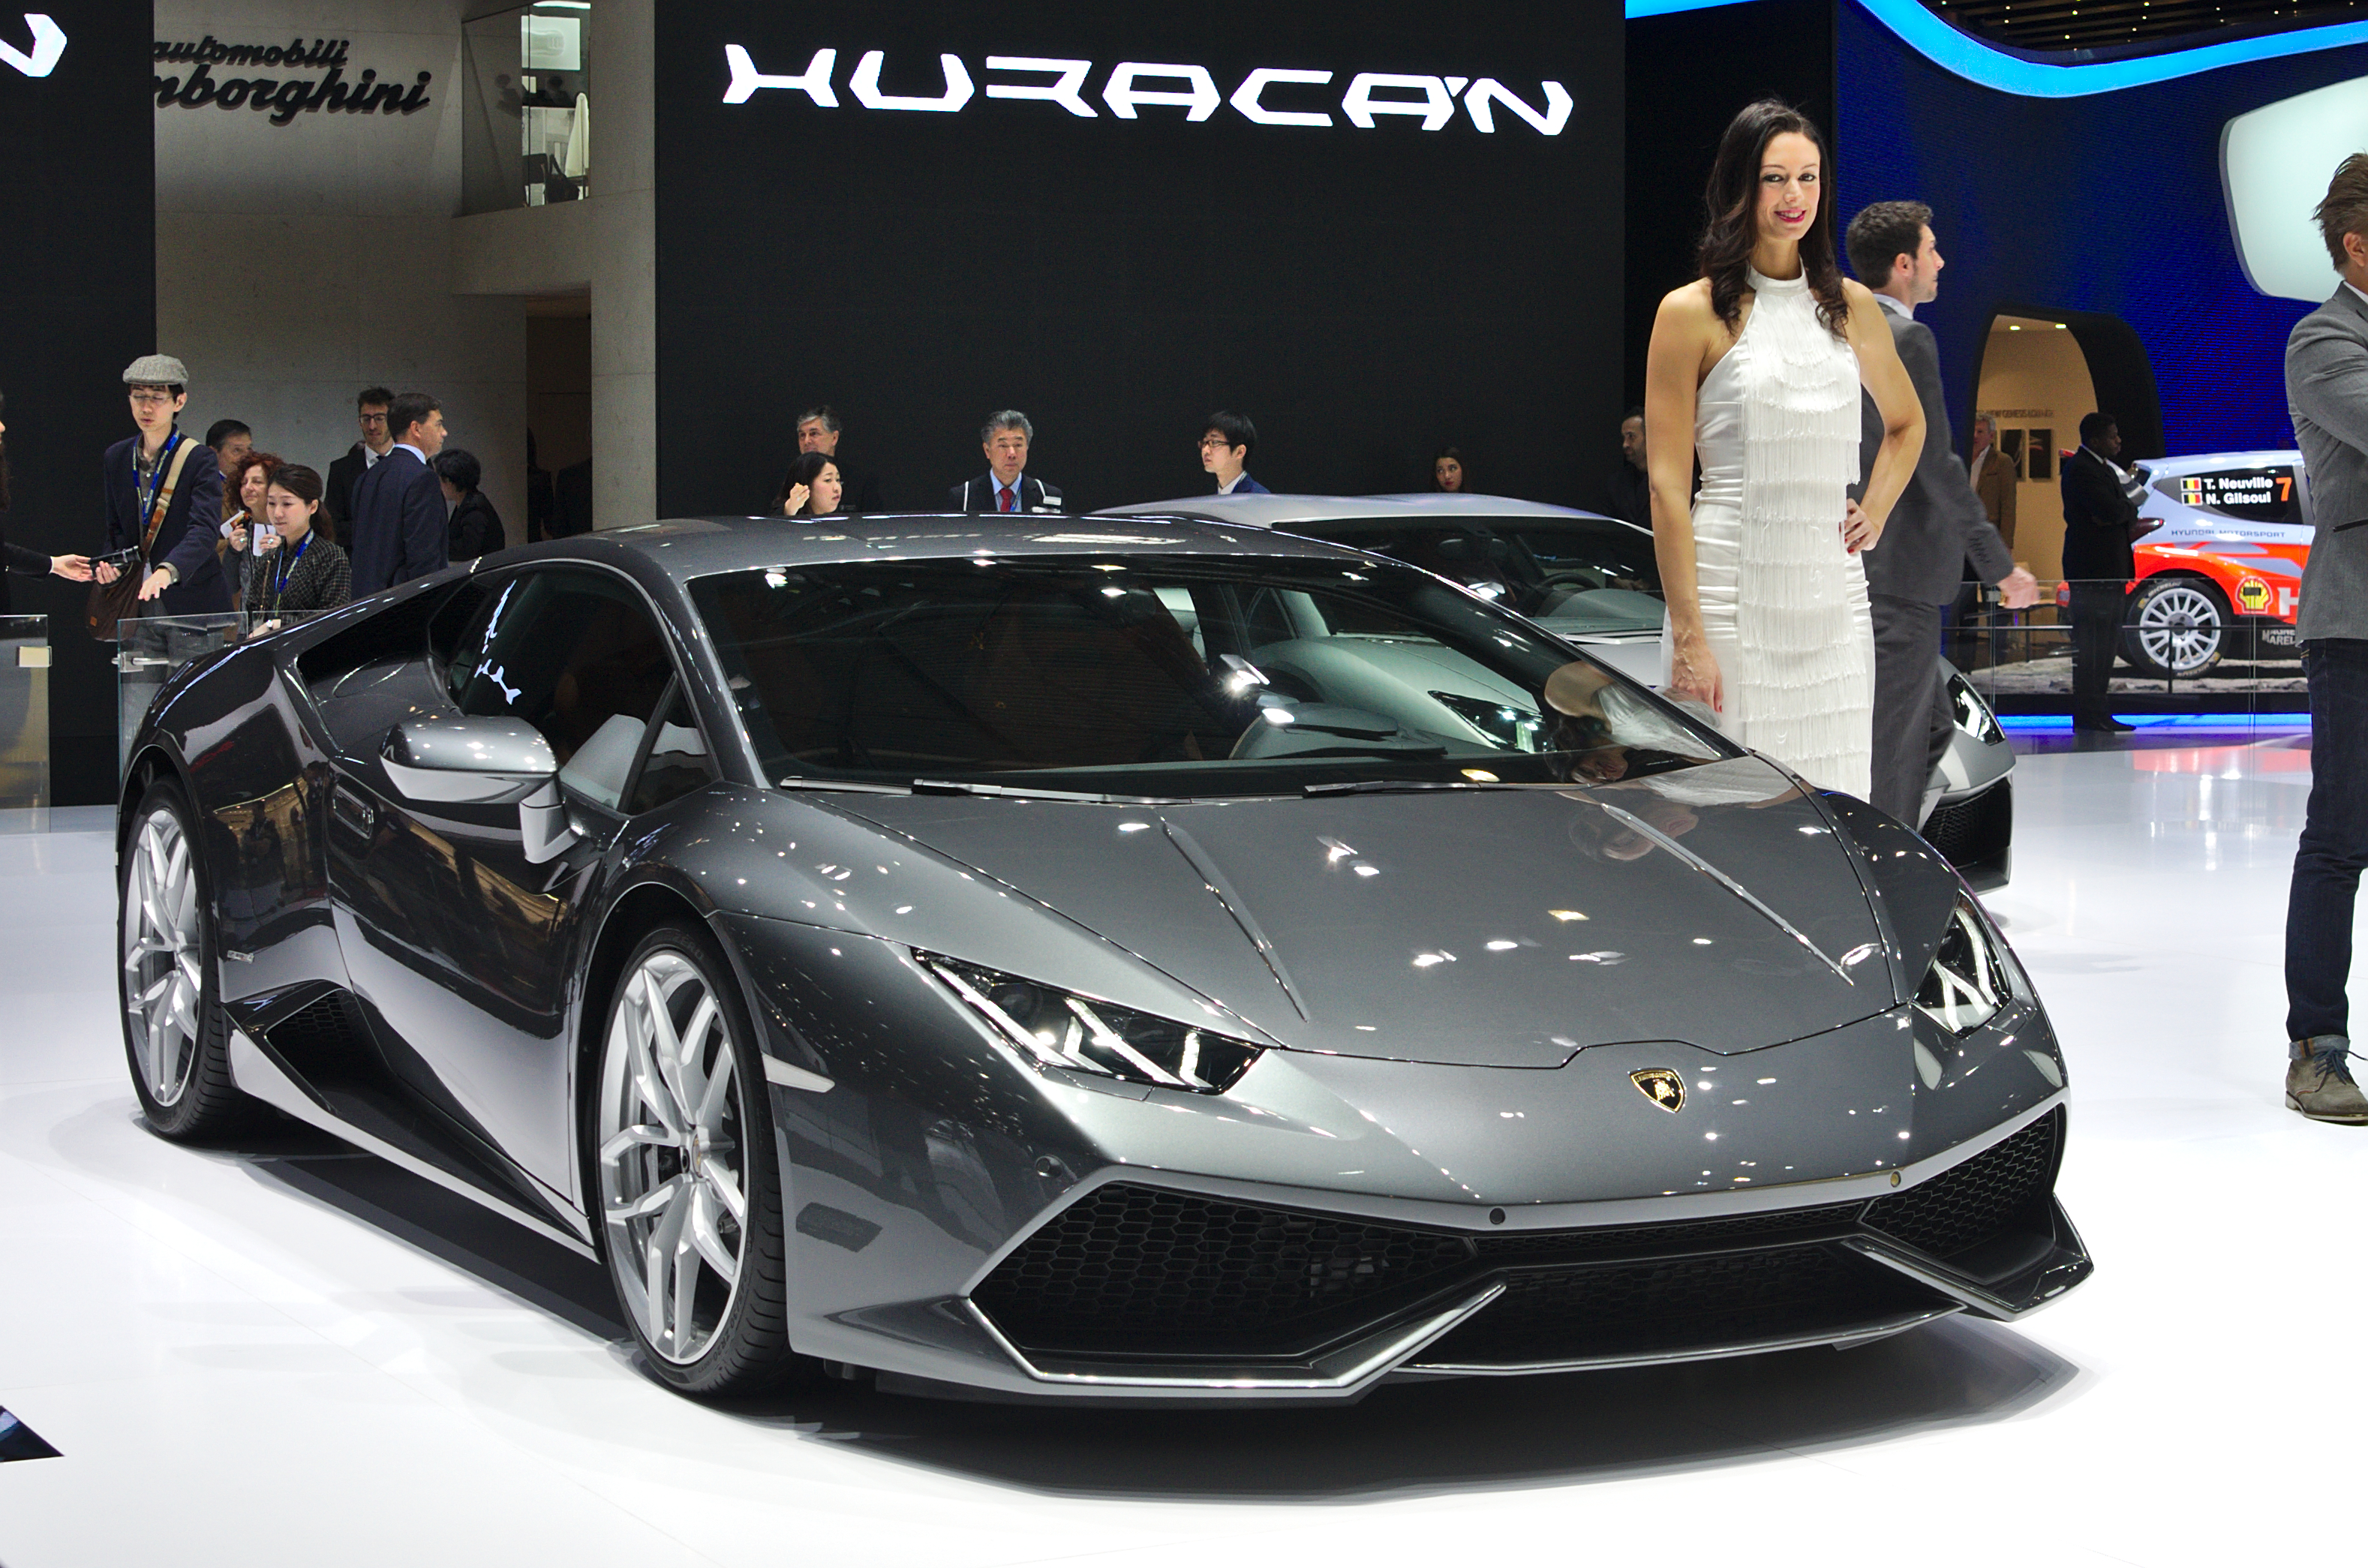 file salon de l 39 auto de gen ve 2014 20140305 lamborghini huracan wikimedia commons. Black Bedroom Furniture Sets. Home Design Ideas